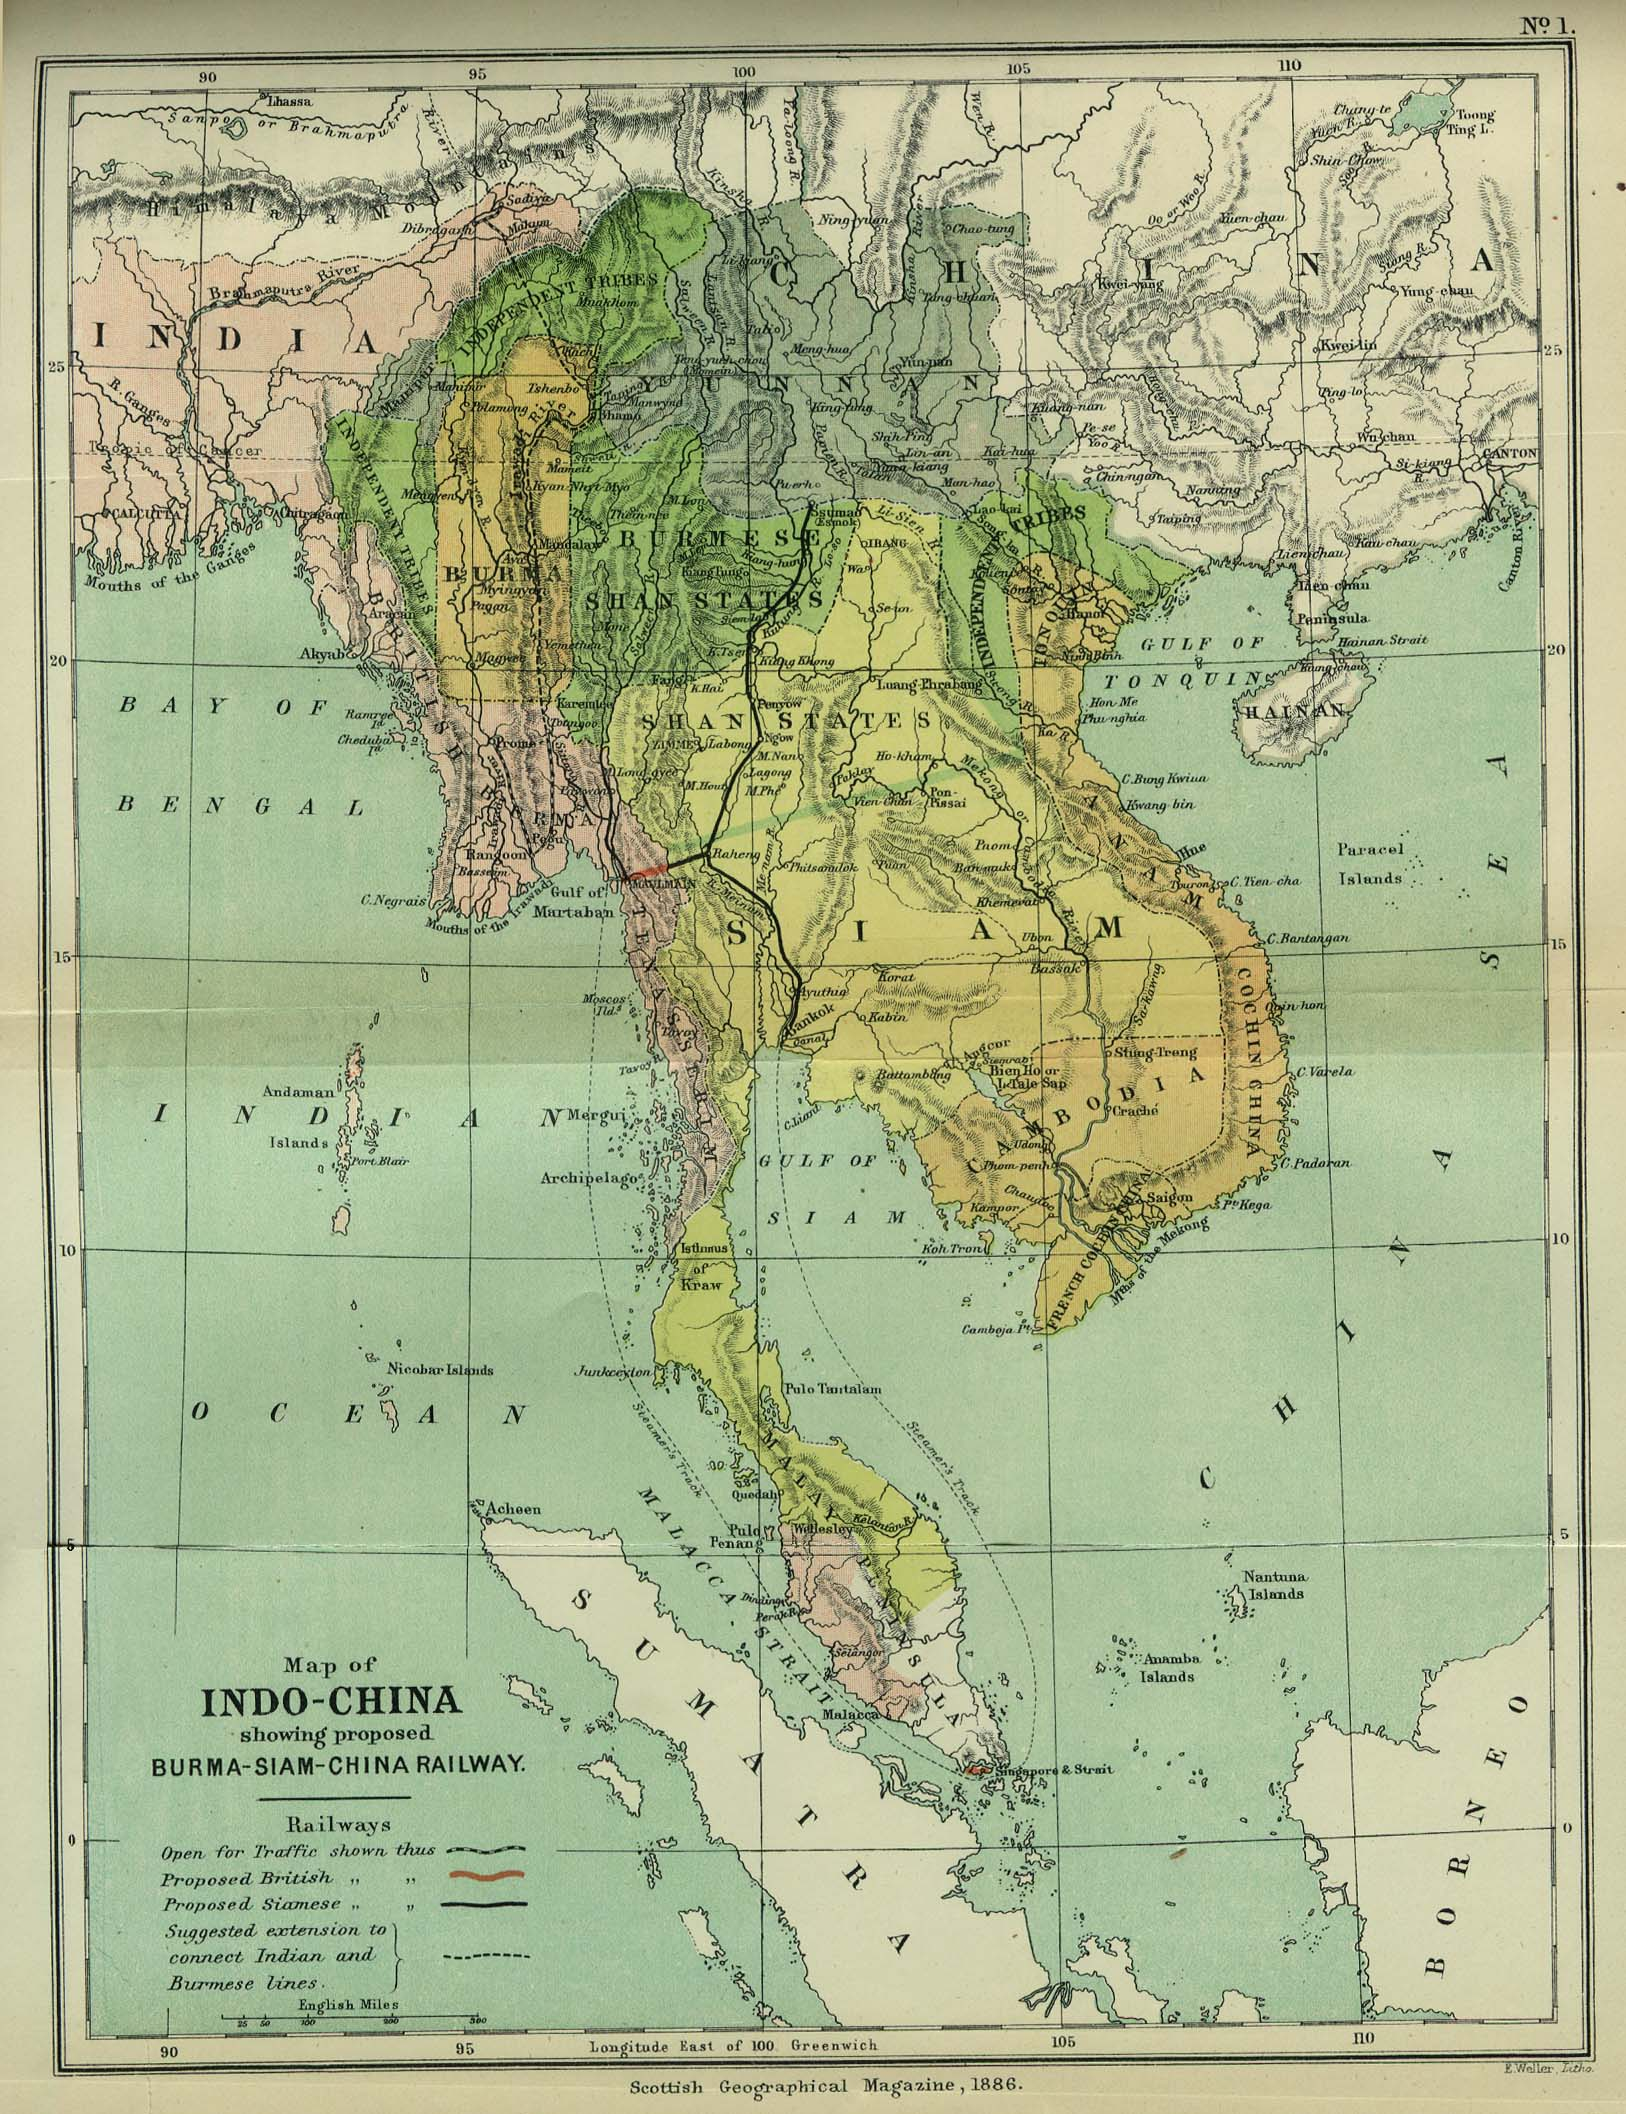 Map of Indochina, 1886